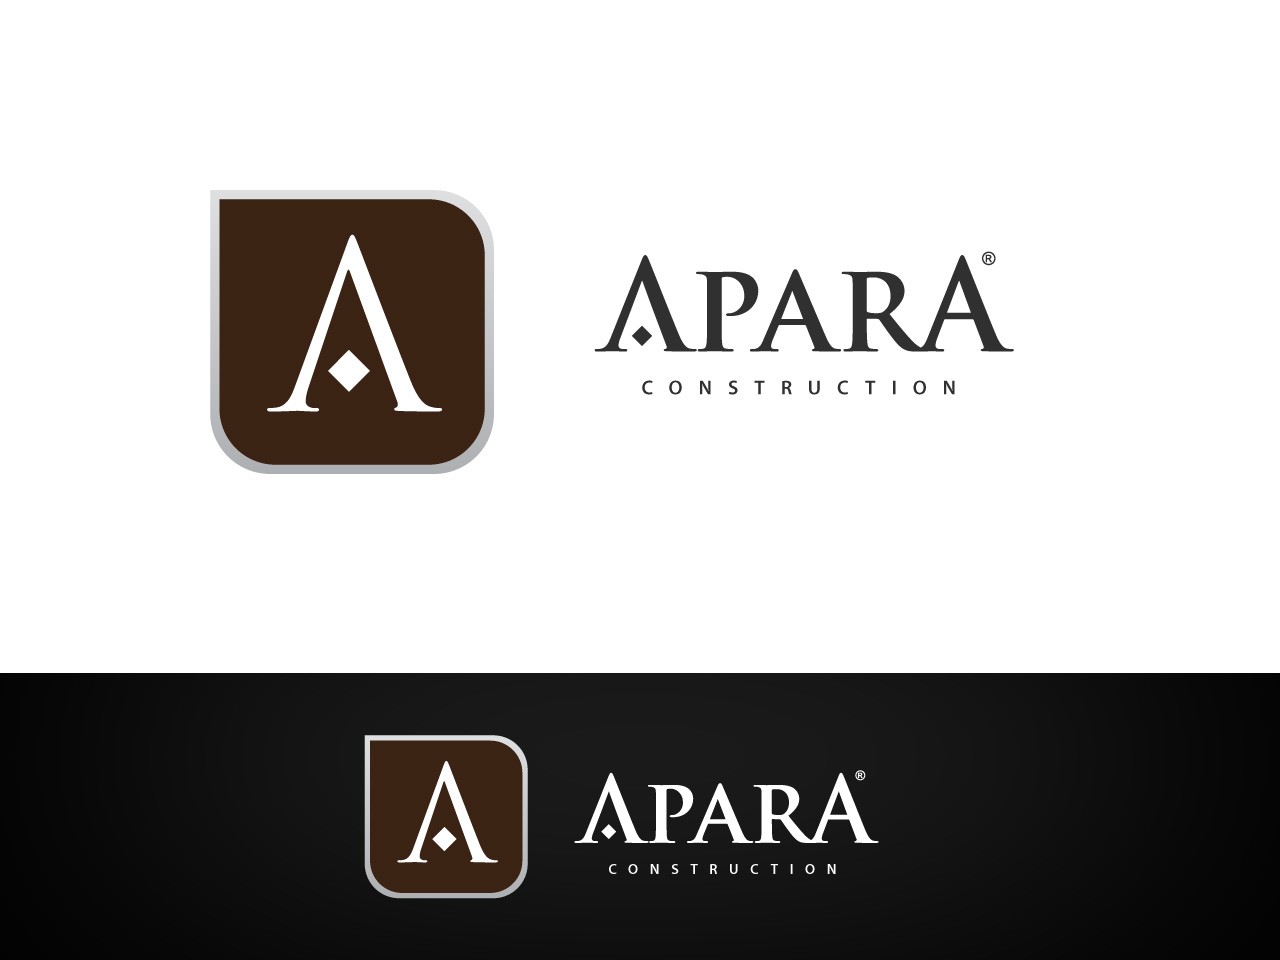 Logo Design by jpbituin - Entry No. 45 in the Logo Design Contest Apara Construction Logo Design.